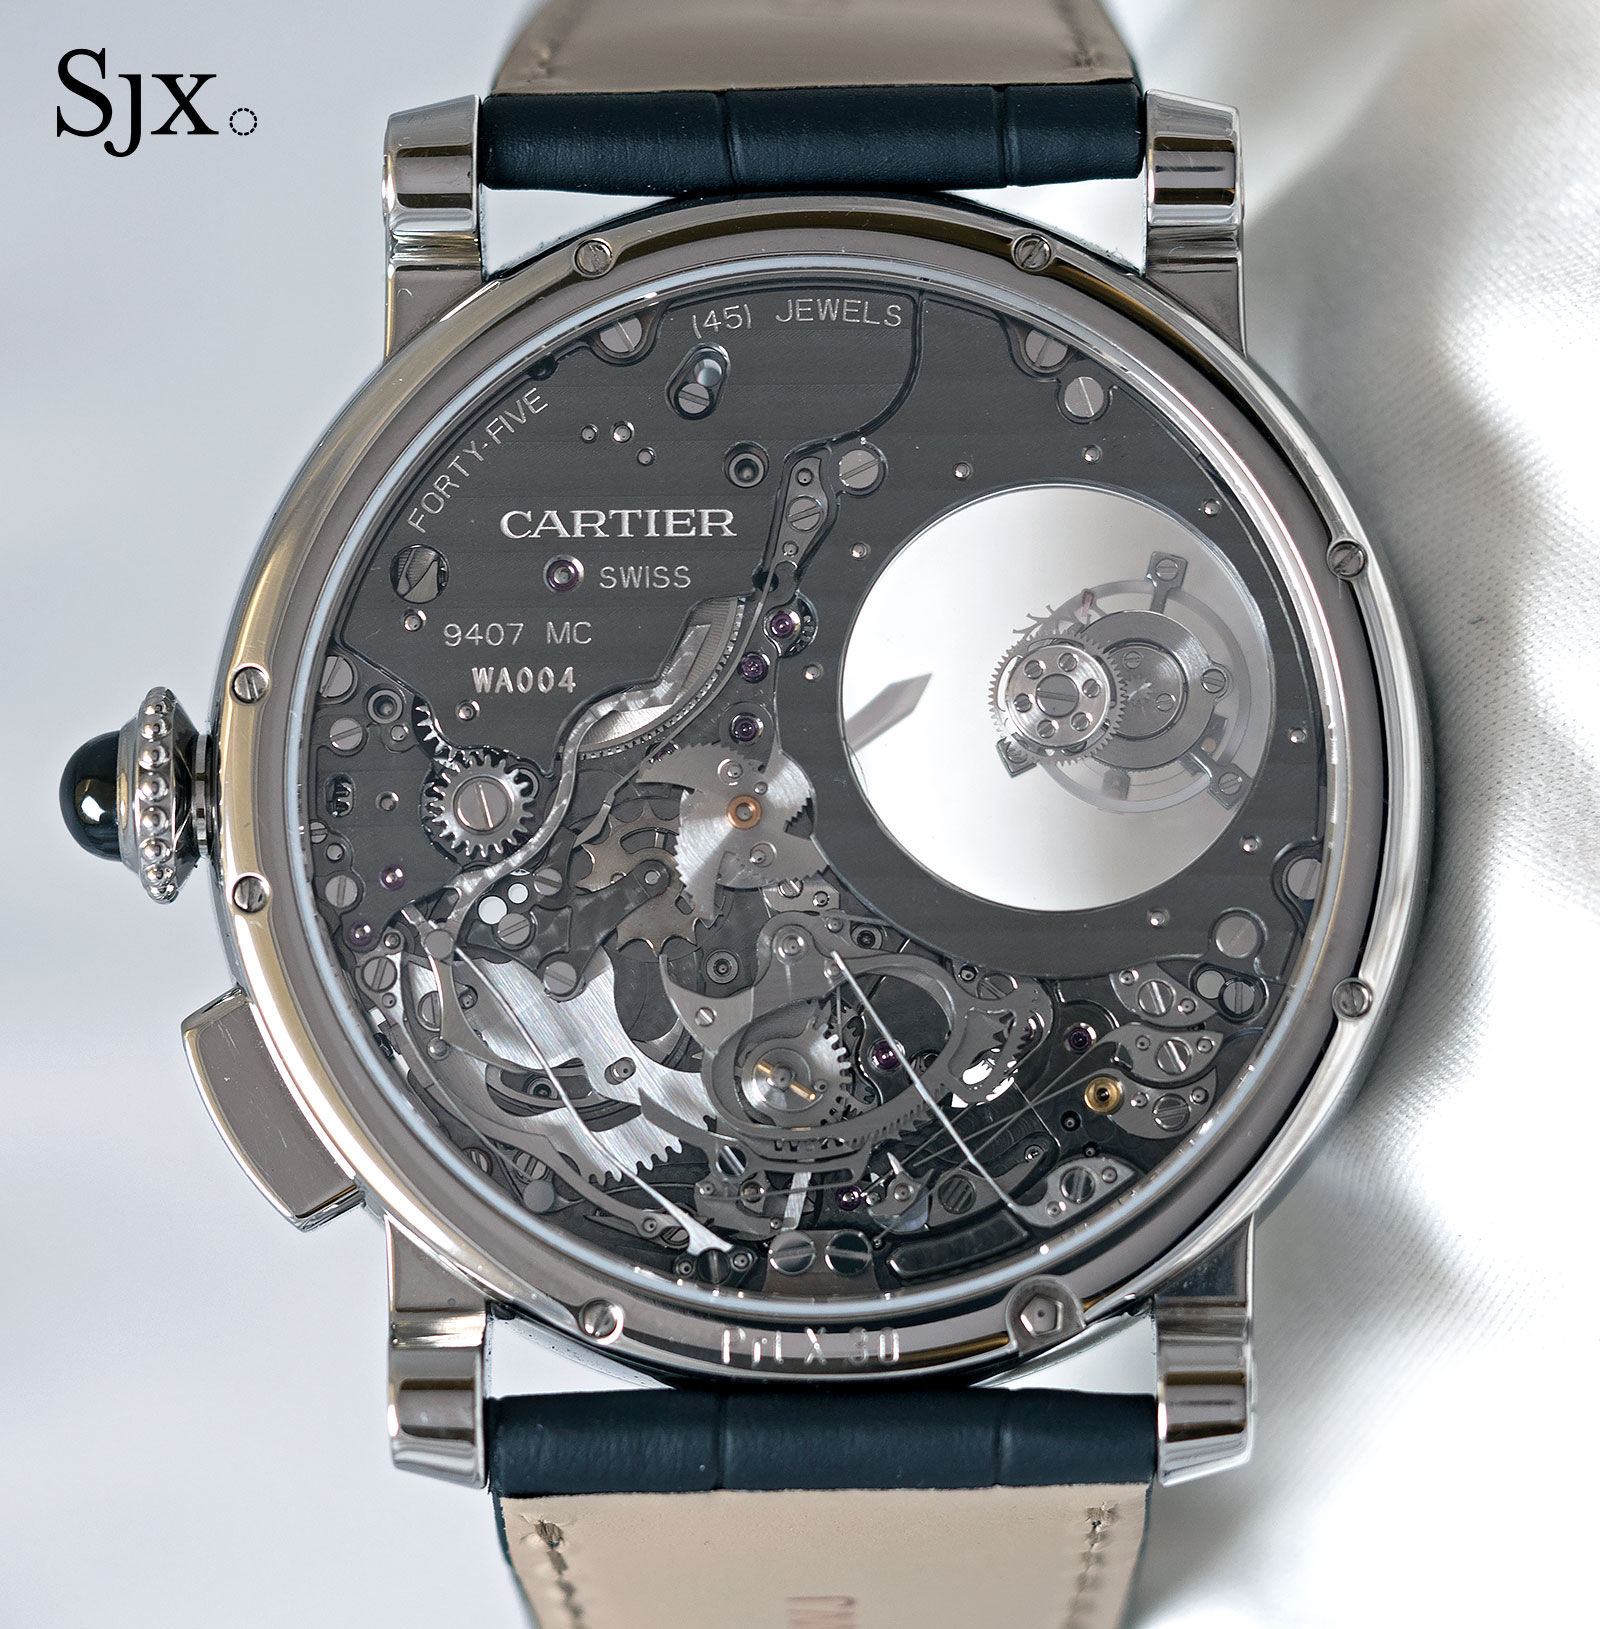 Cartier Rotonde Repeater Mysterious Double Tourbillon 4